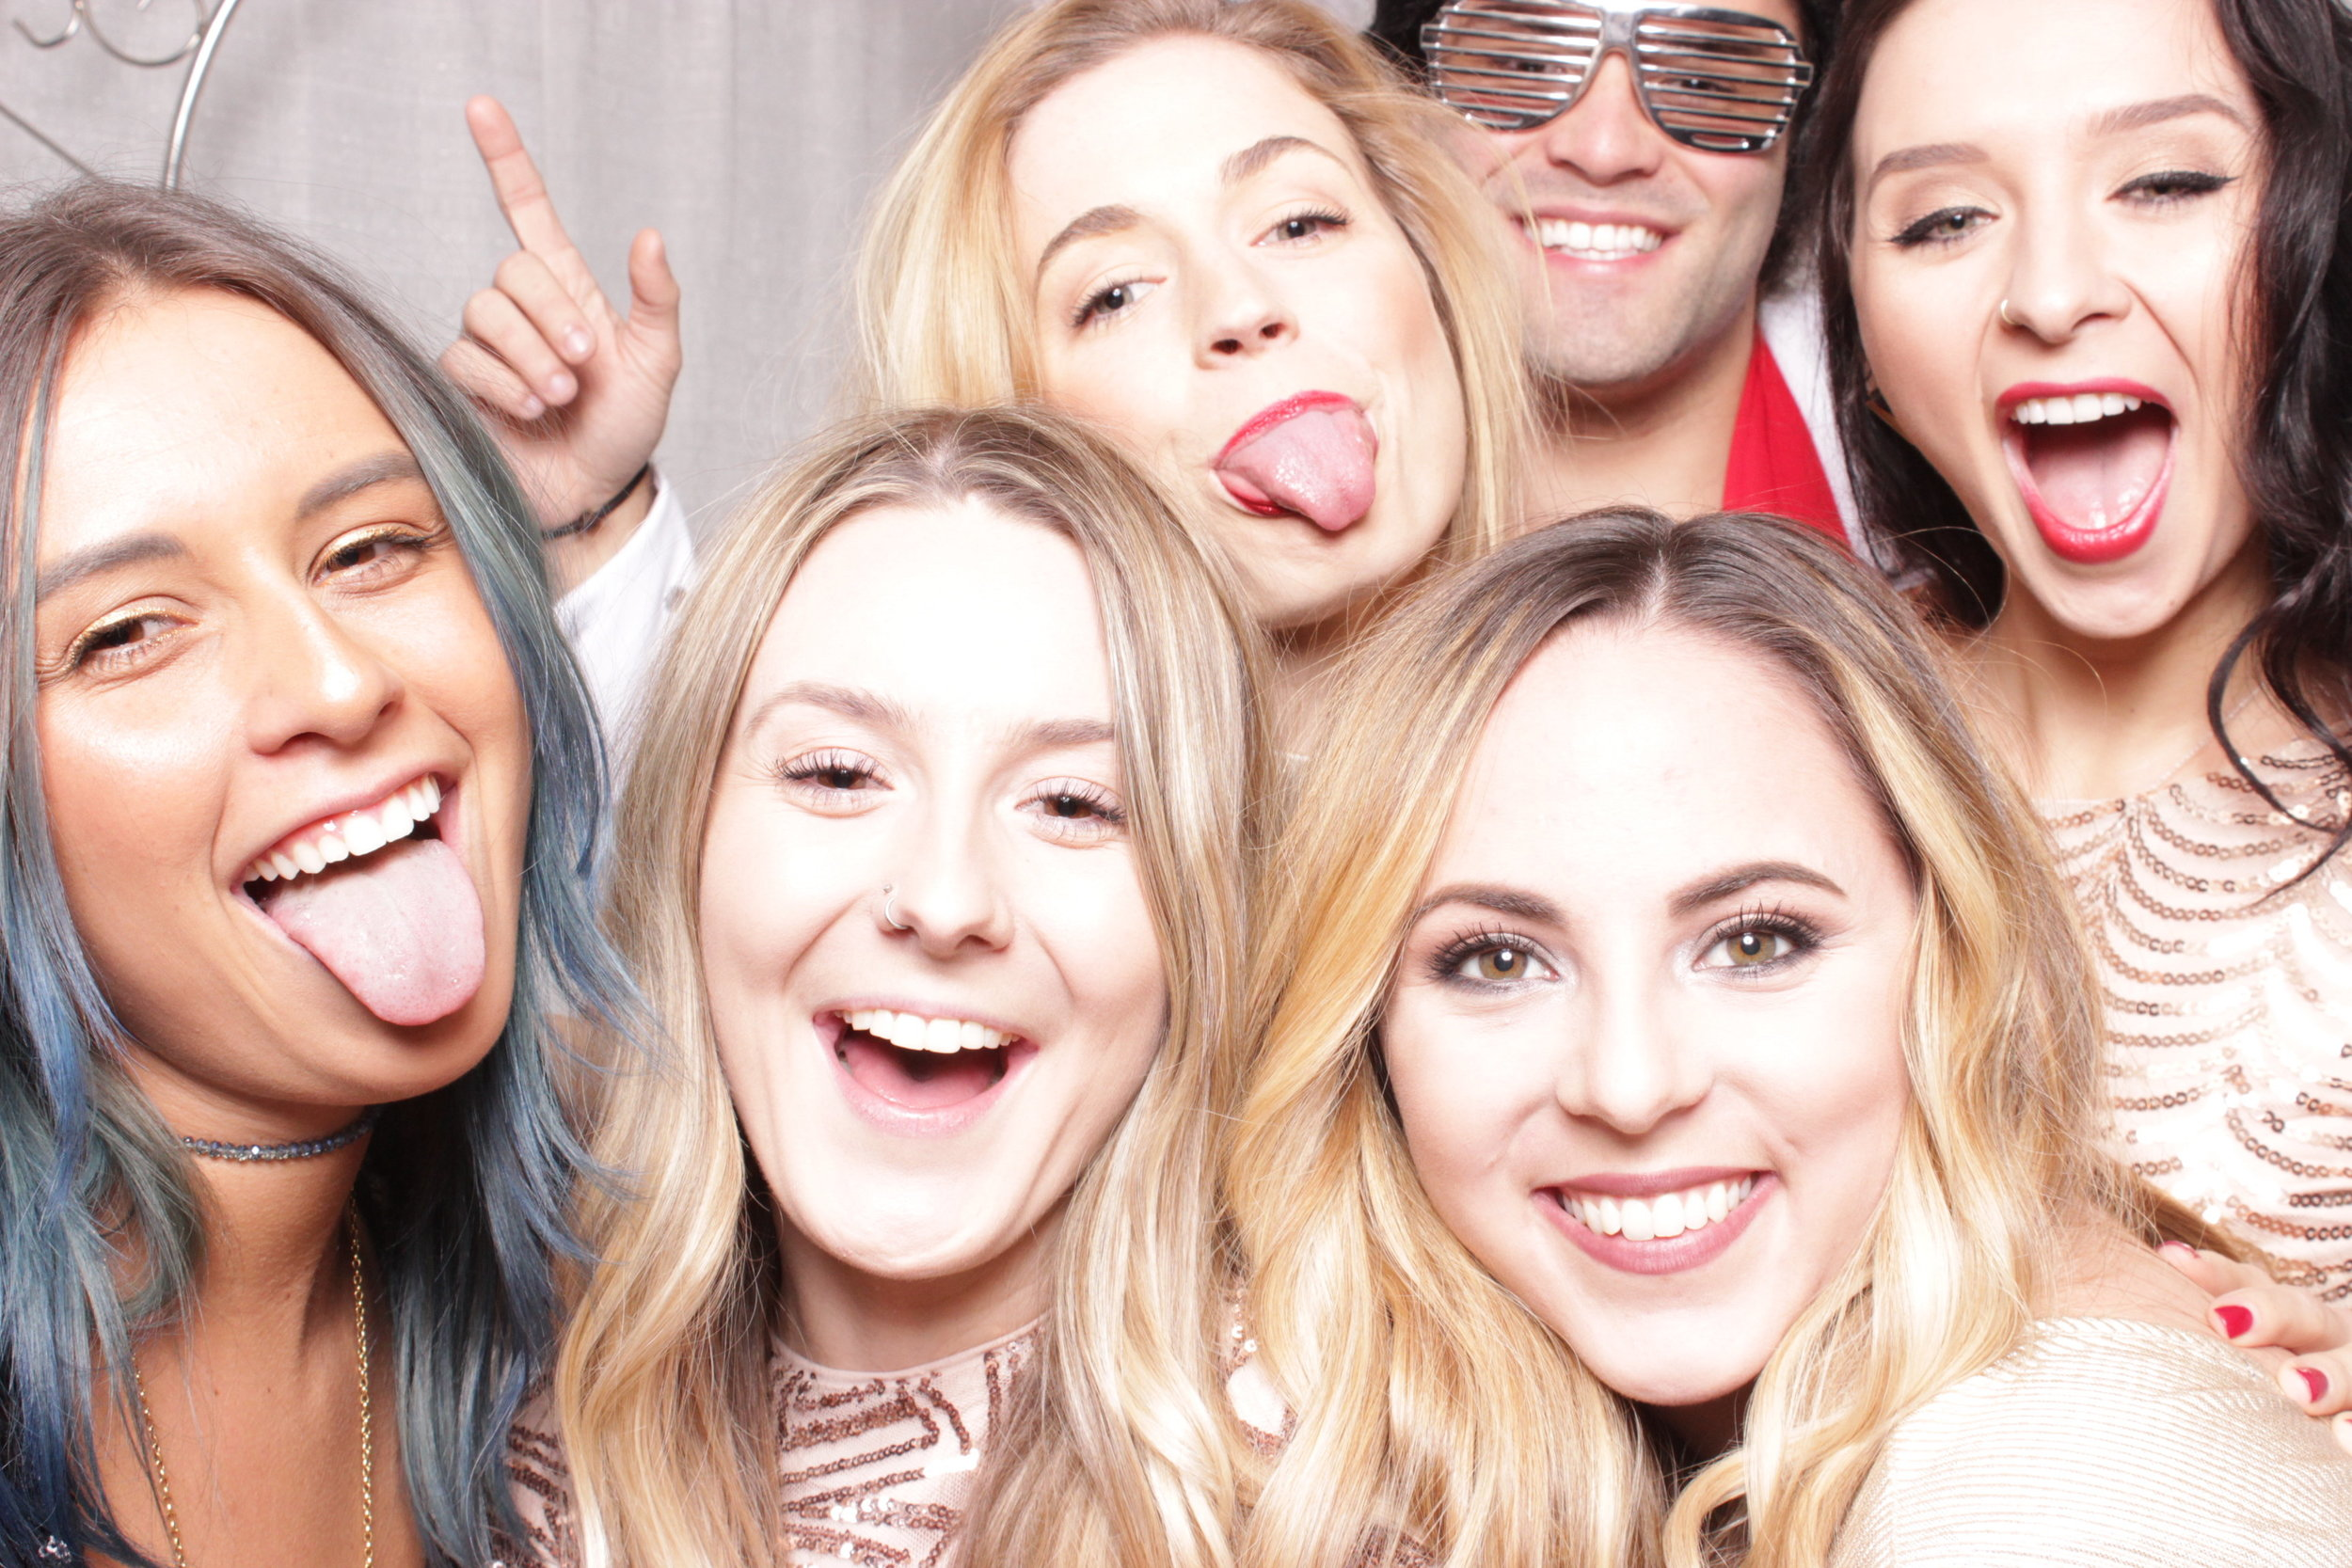 Chico-photo-booth-rental-props-fun-parties